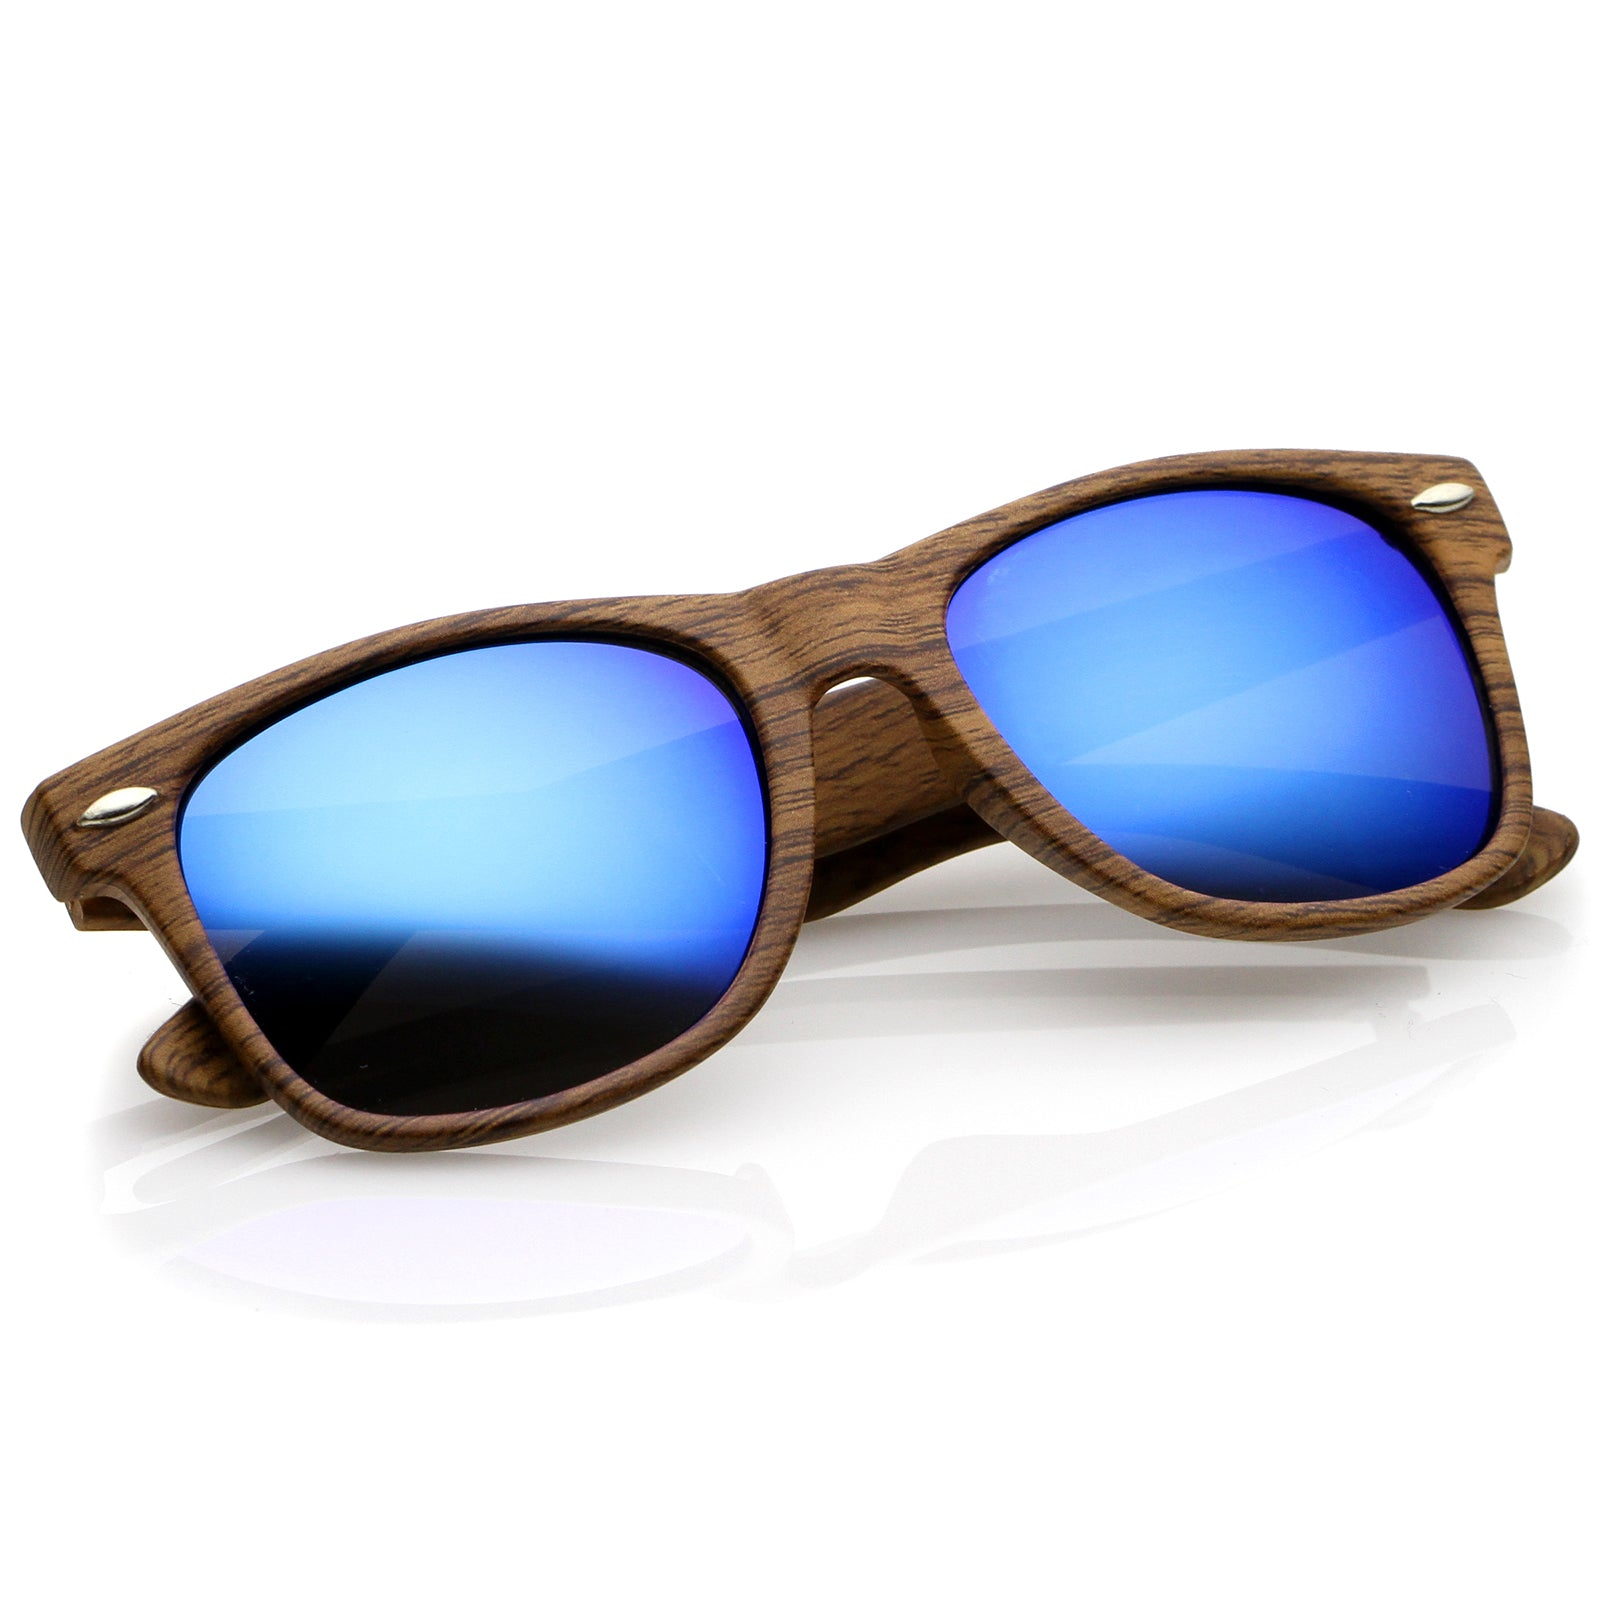 92a65db81f Classic Wood Printed Colored Mirror Square Lens Horn Rimmed ...